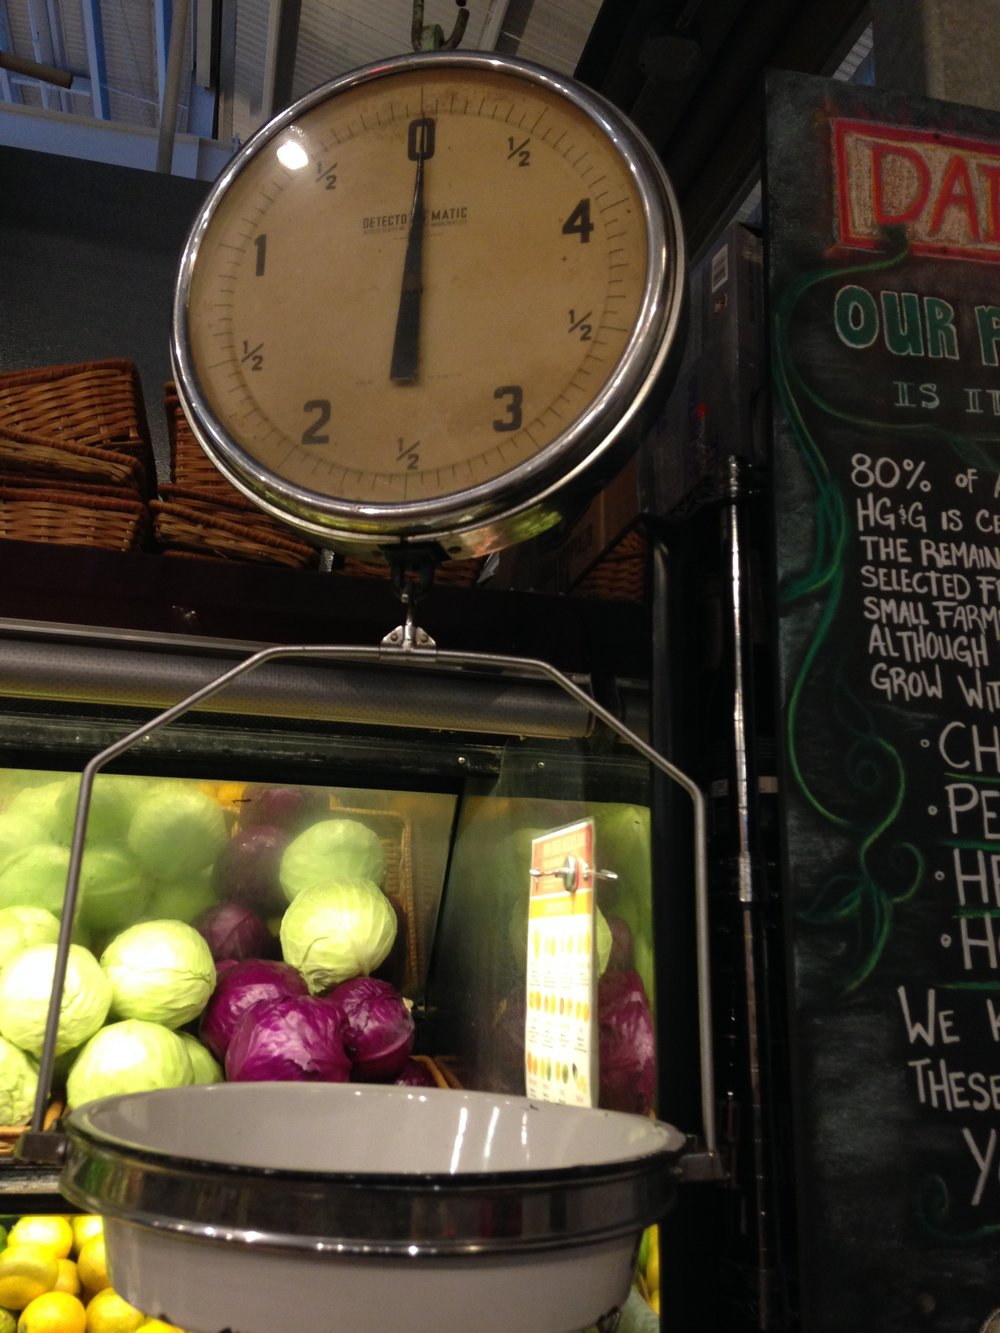 Vintage scale at the Hudson Greens & Goods at the Oxbow Public Market in Napa